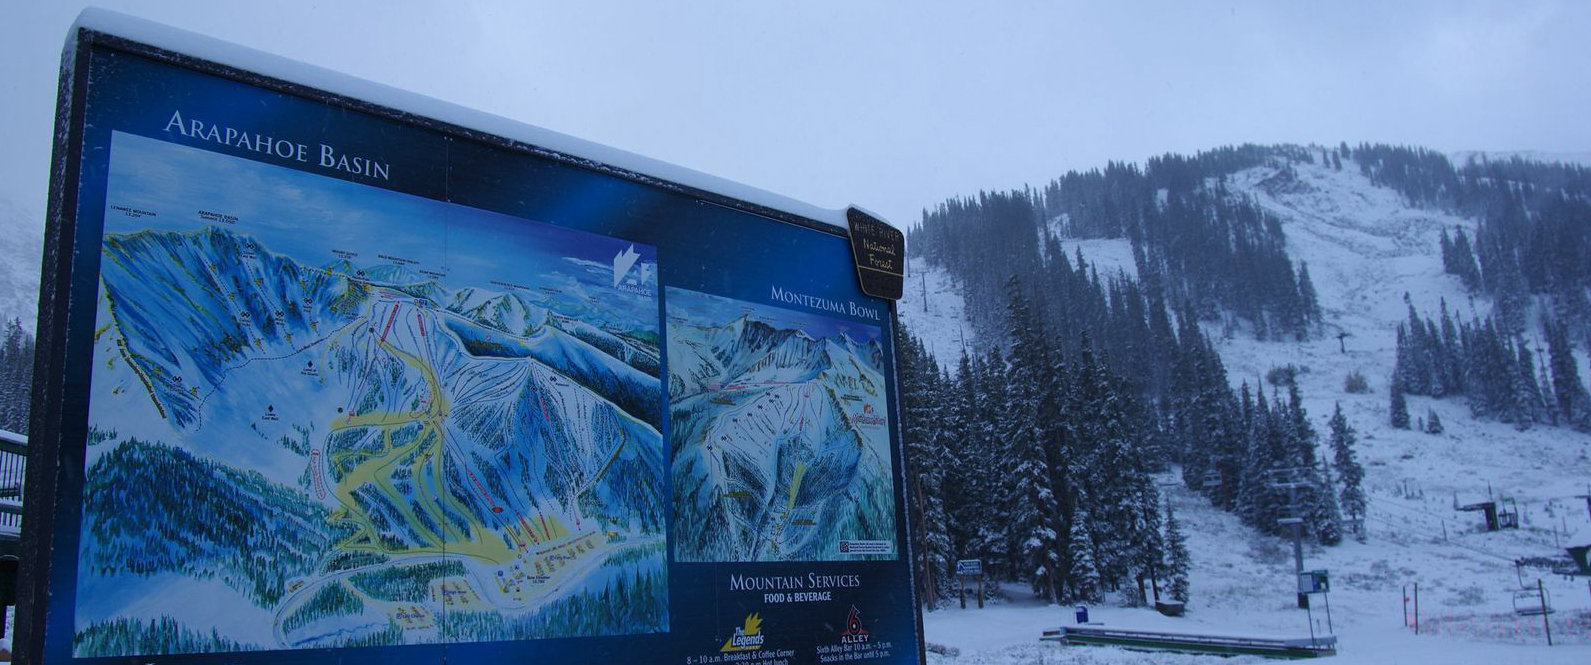 Snow in September! - © Arapahoe Basin Ski Area